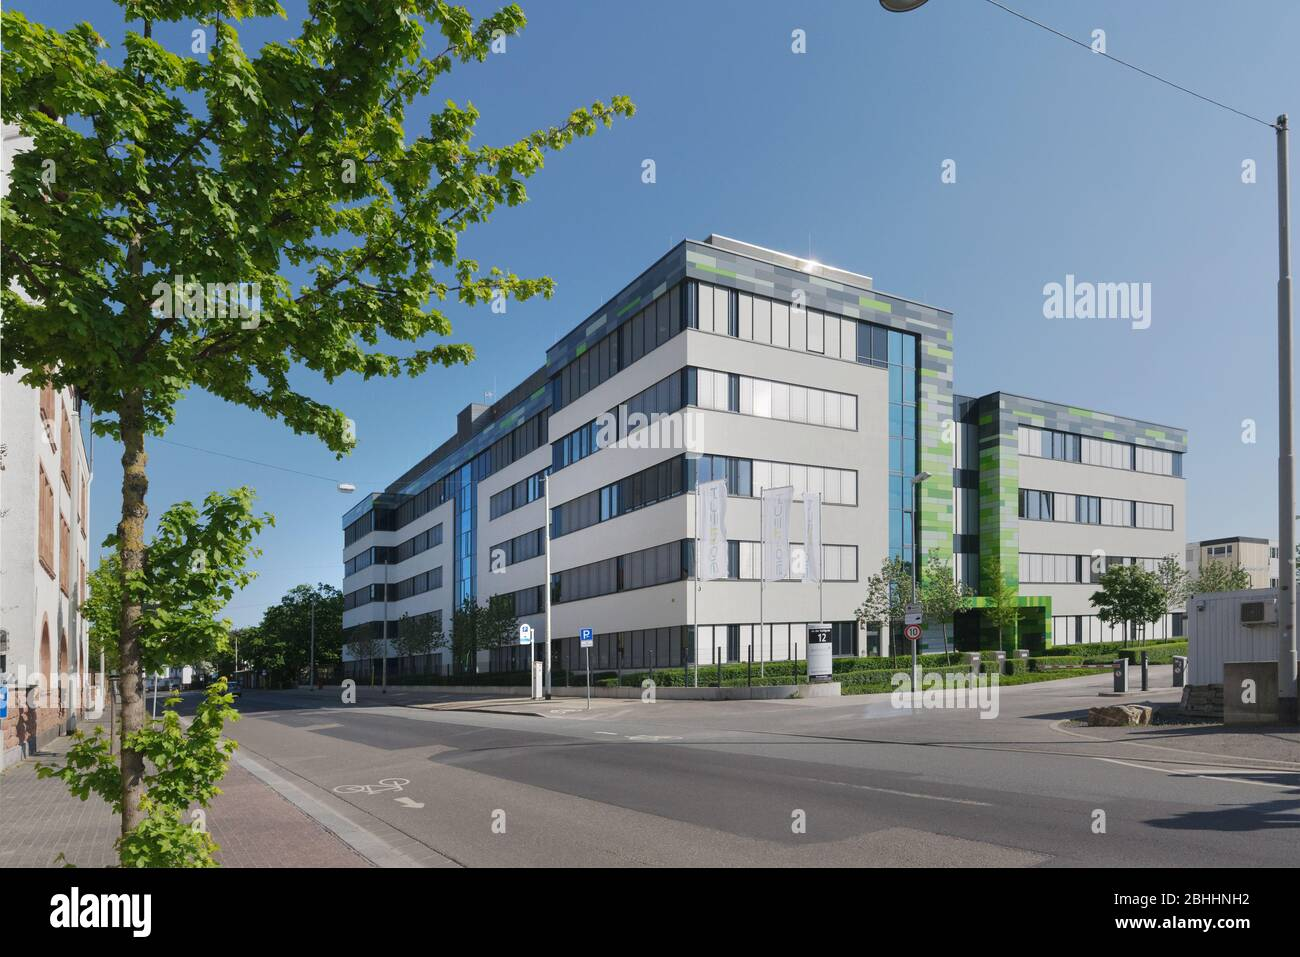 Mainz Germany April 25 2020 The German Biotechnology Company Biontech Conducts Research In The Field Of Developing A Vaccine Against Covid 19 Stock Photo Alamy